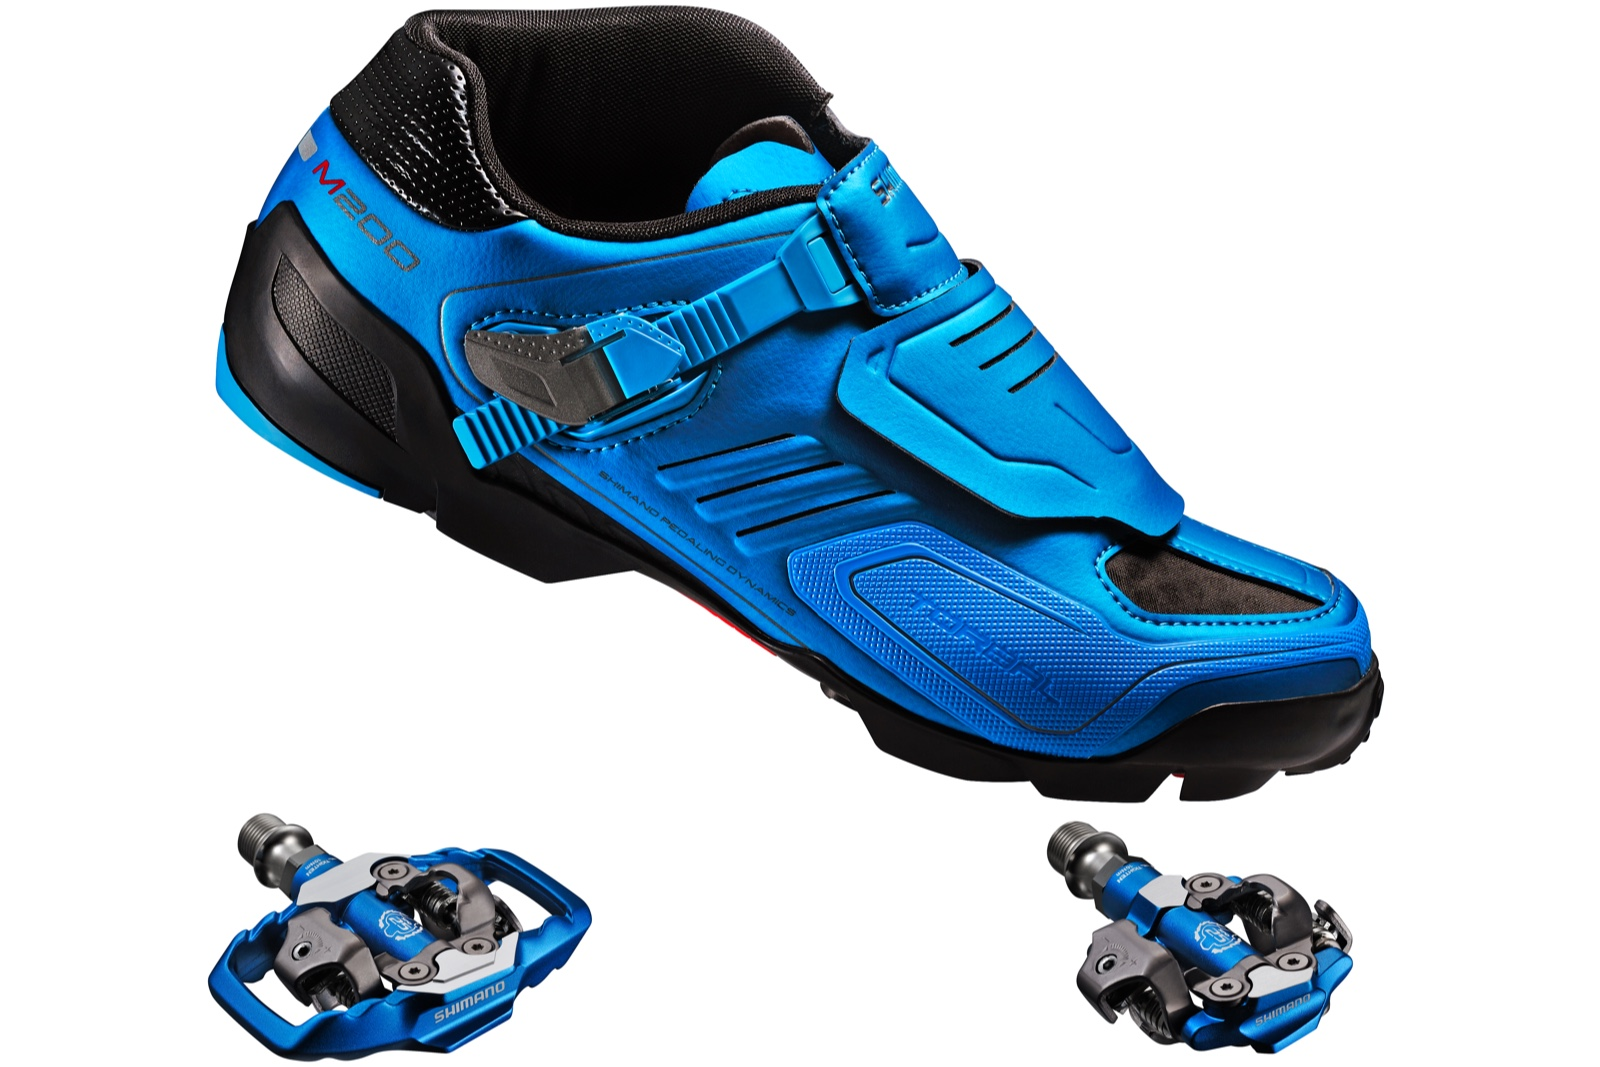 Shimano's new M200 Blue Enduro/Trail shoe with matching blue XTR style M995  trail or M990 race pedals continues the trend set by a revolutionary design  in ...